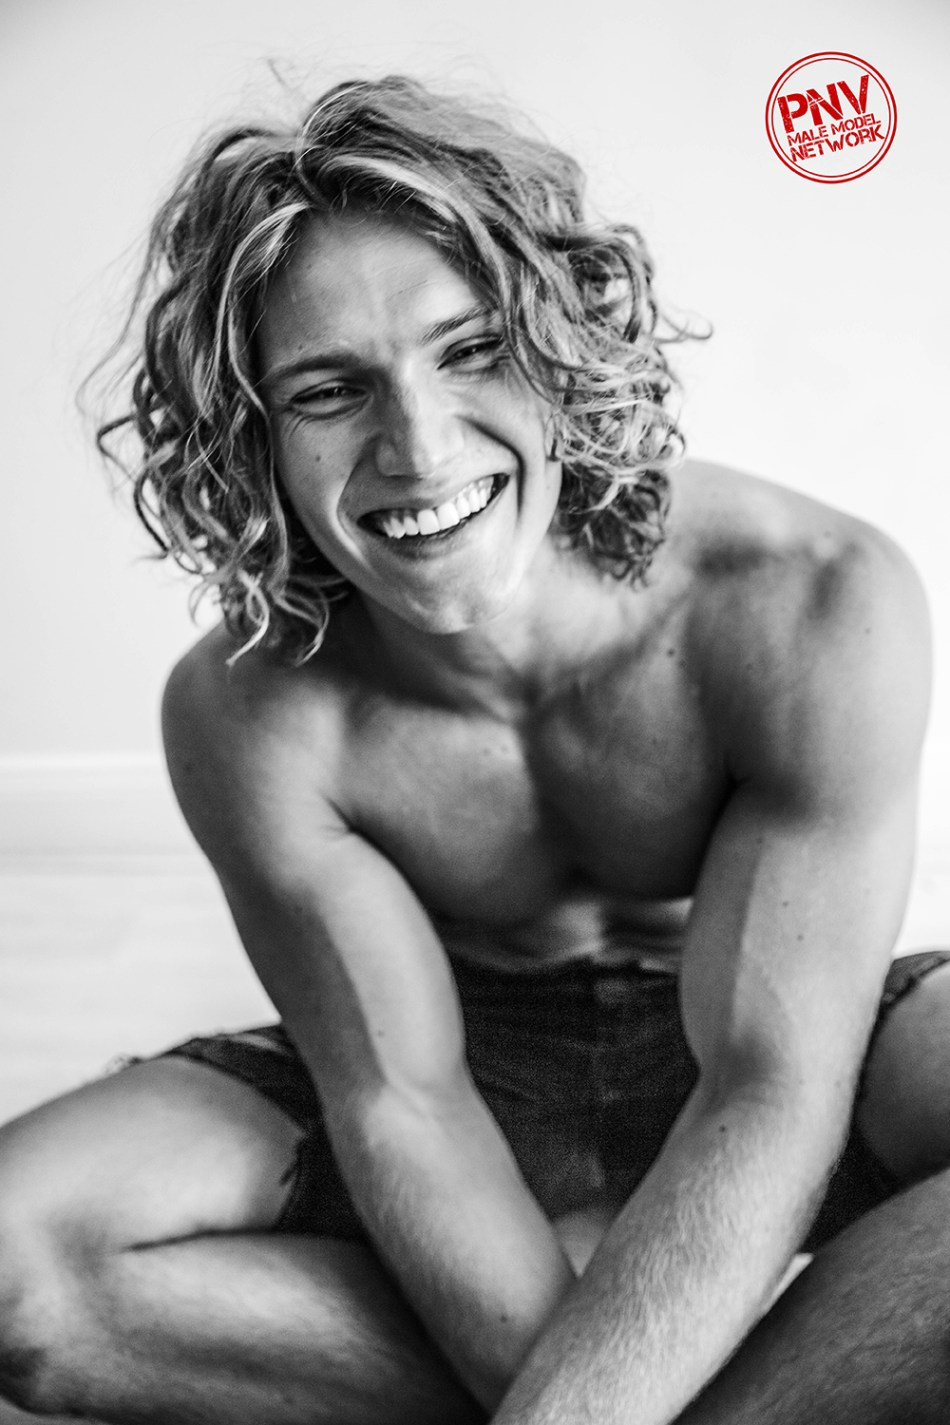 Ben Ahlblad: PnV Exclusive Interview By Chris Chase